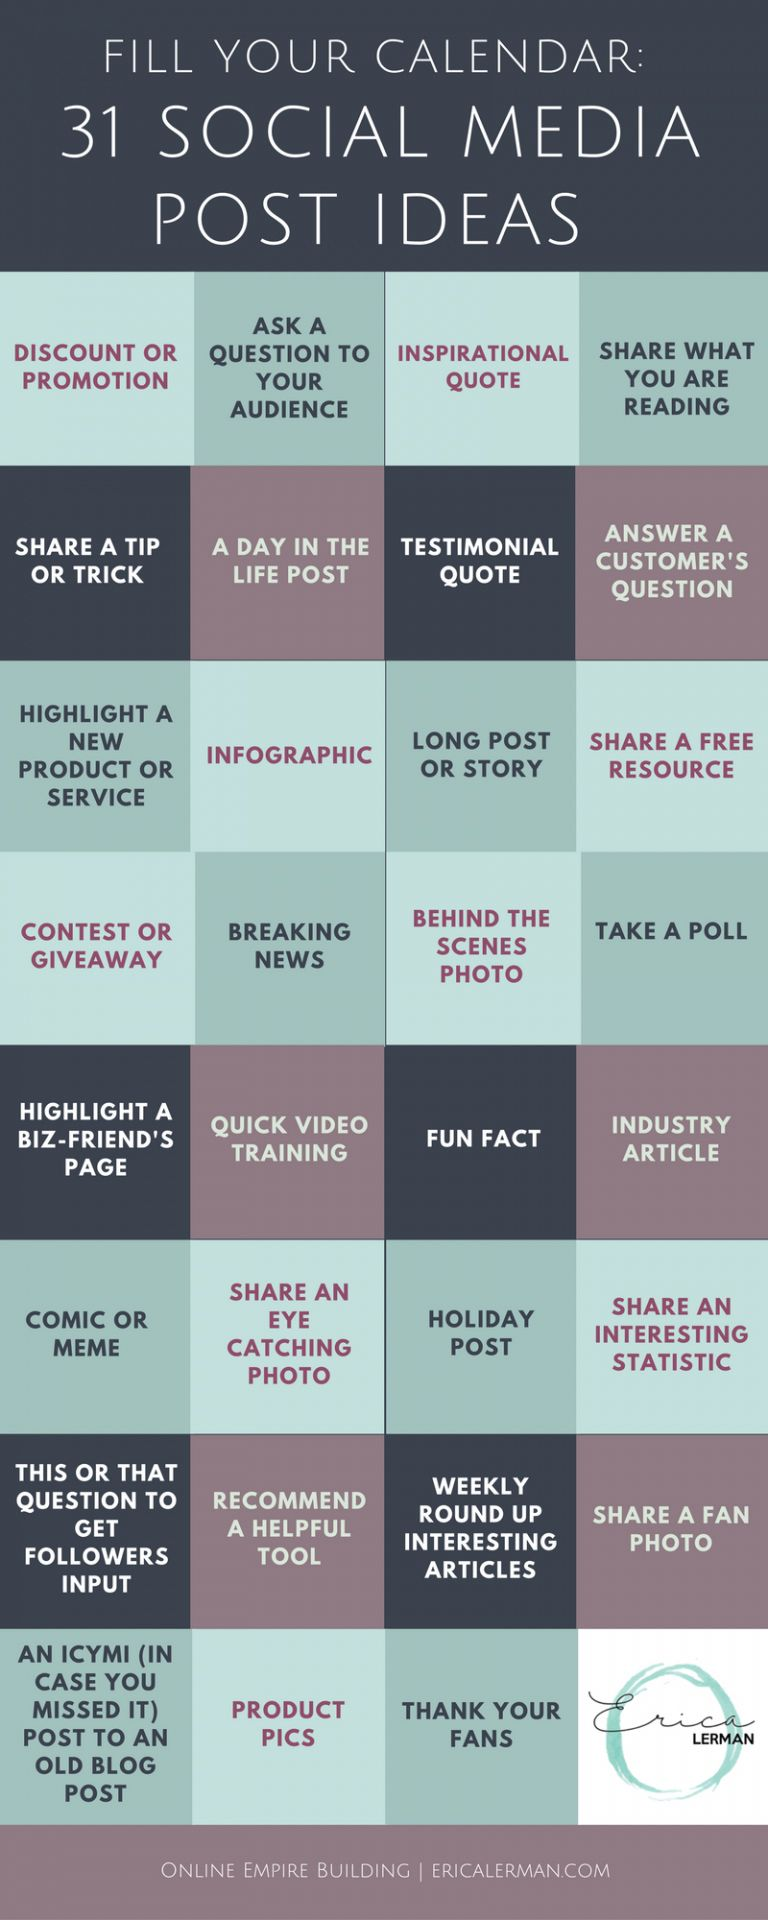 What To Post On Social Media 31 Content Ideas To Delight Your Followers Social Media Marketing Social Media Calendar Social Media Content